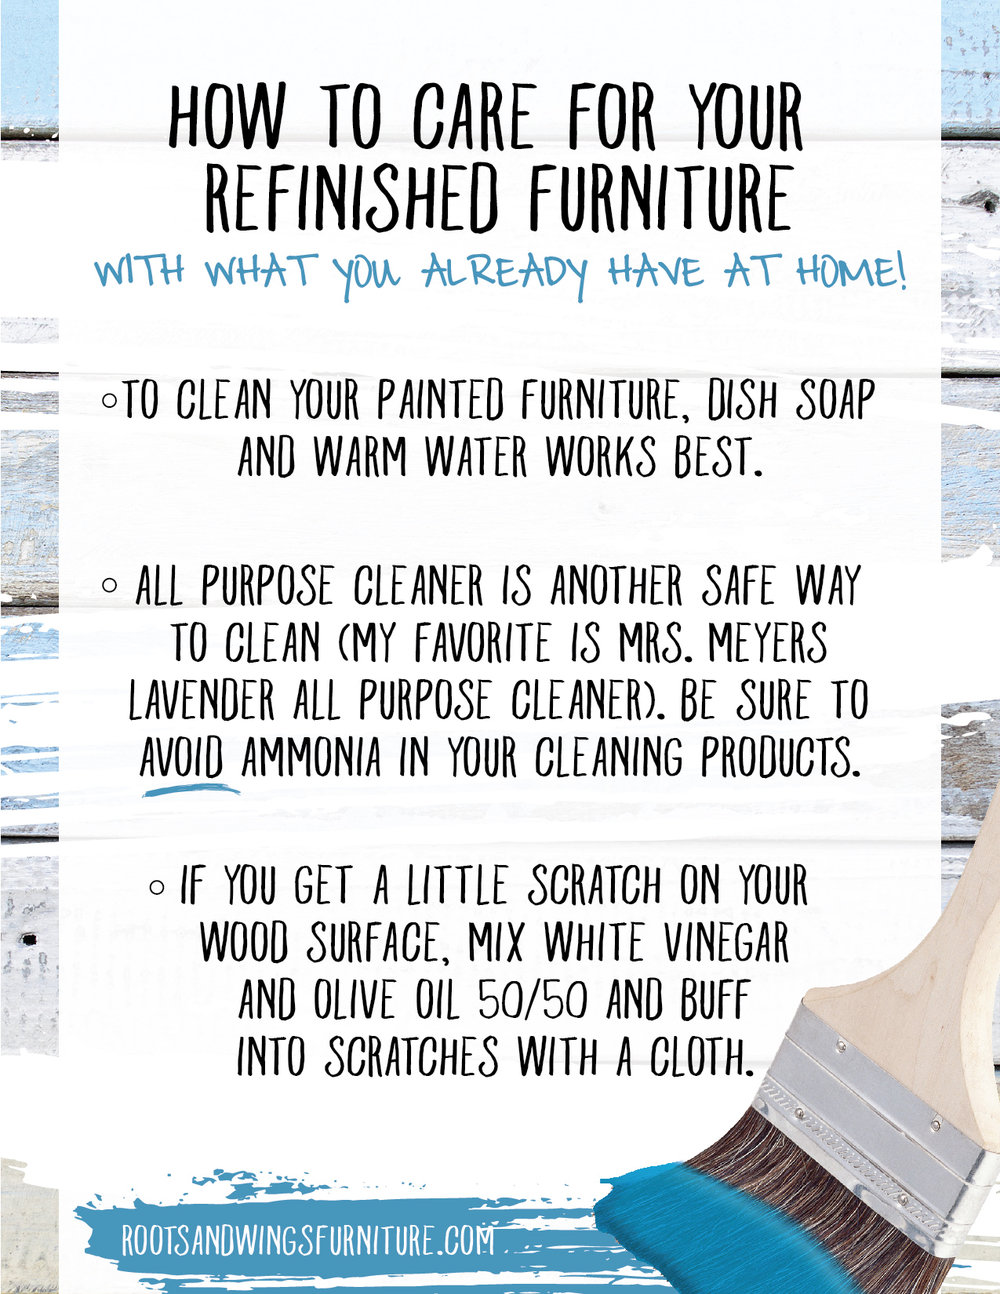 howtocare for furniture